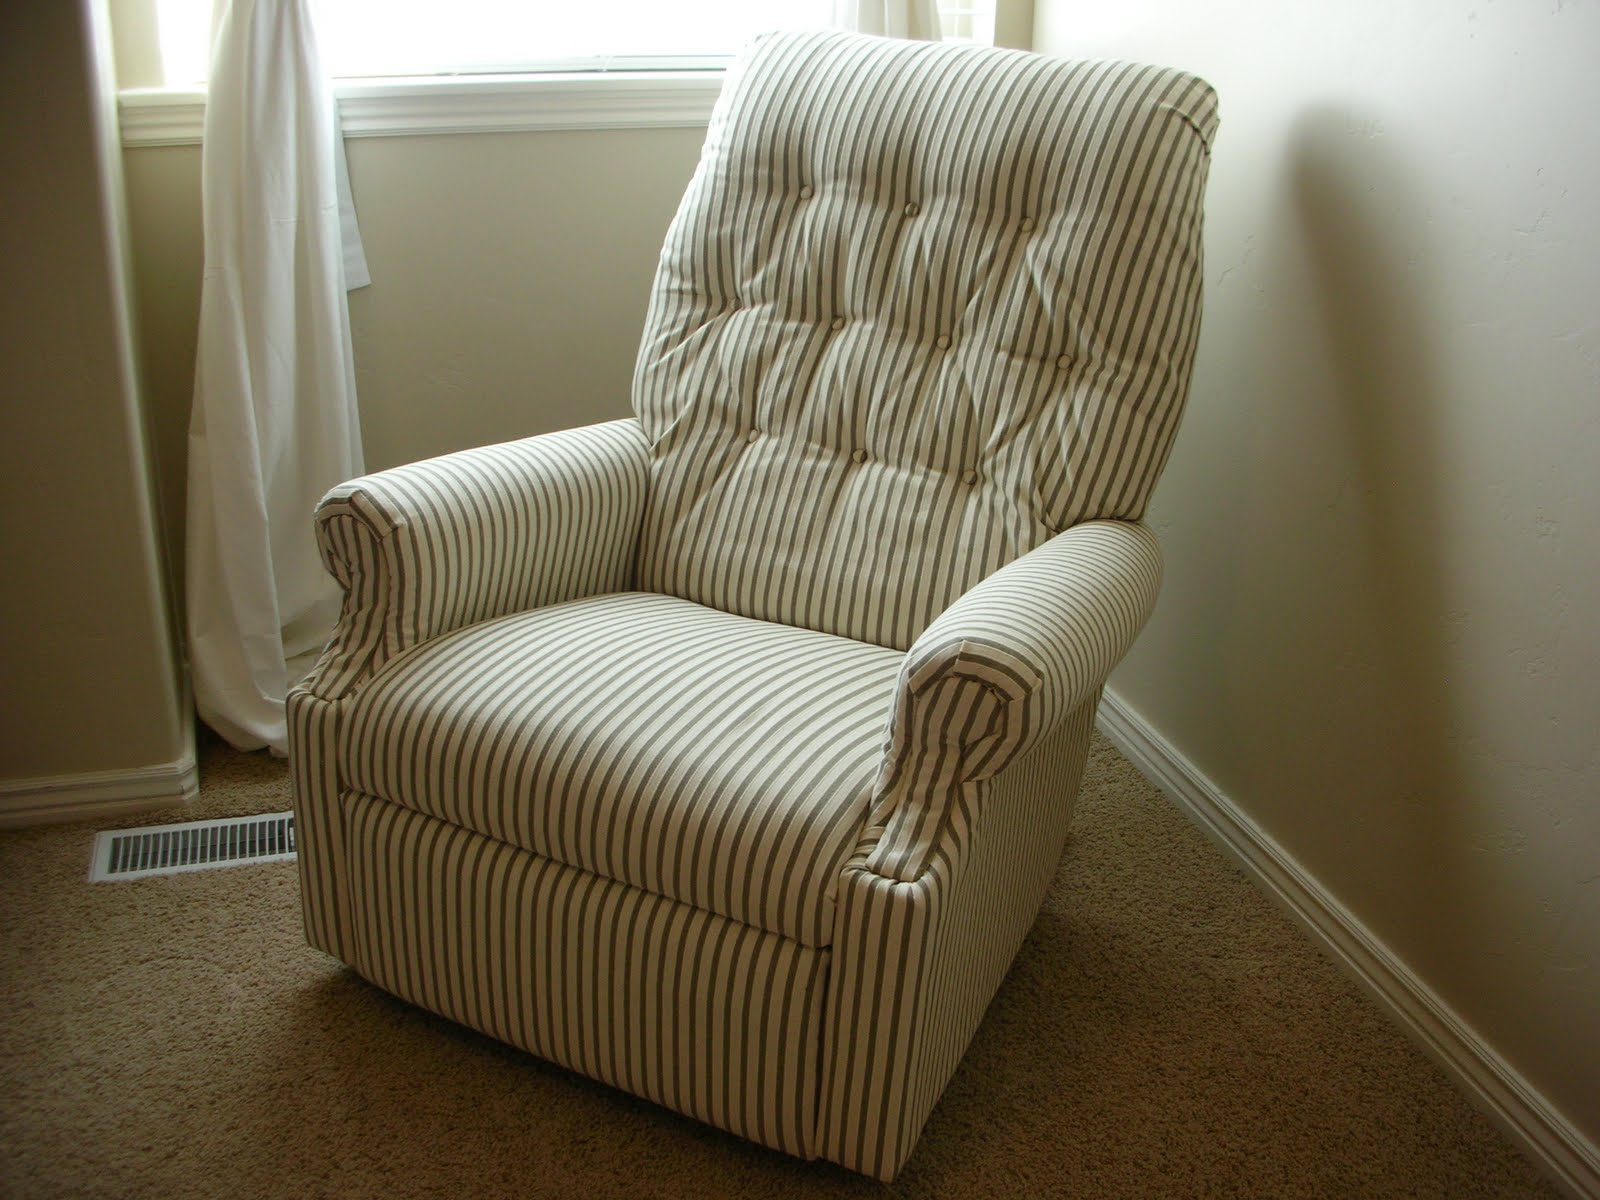 small lazy boy recliners do it yourself divas: DIY: Reupholster An Old La Z Boy Recliner small lazy boy recliners